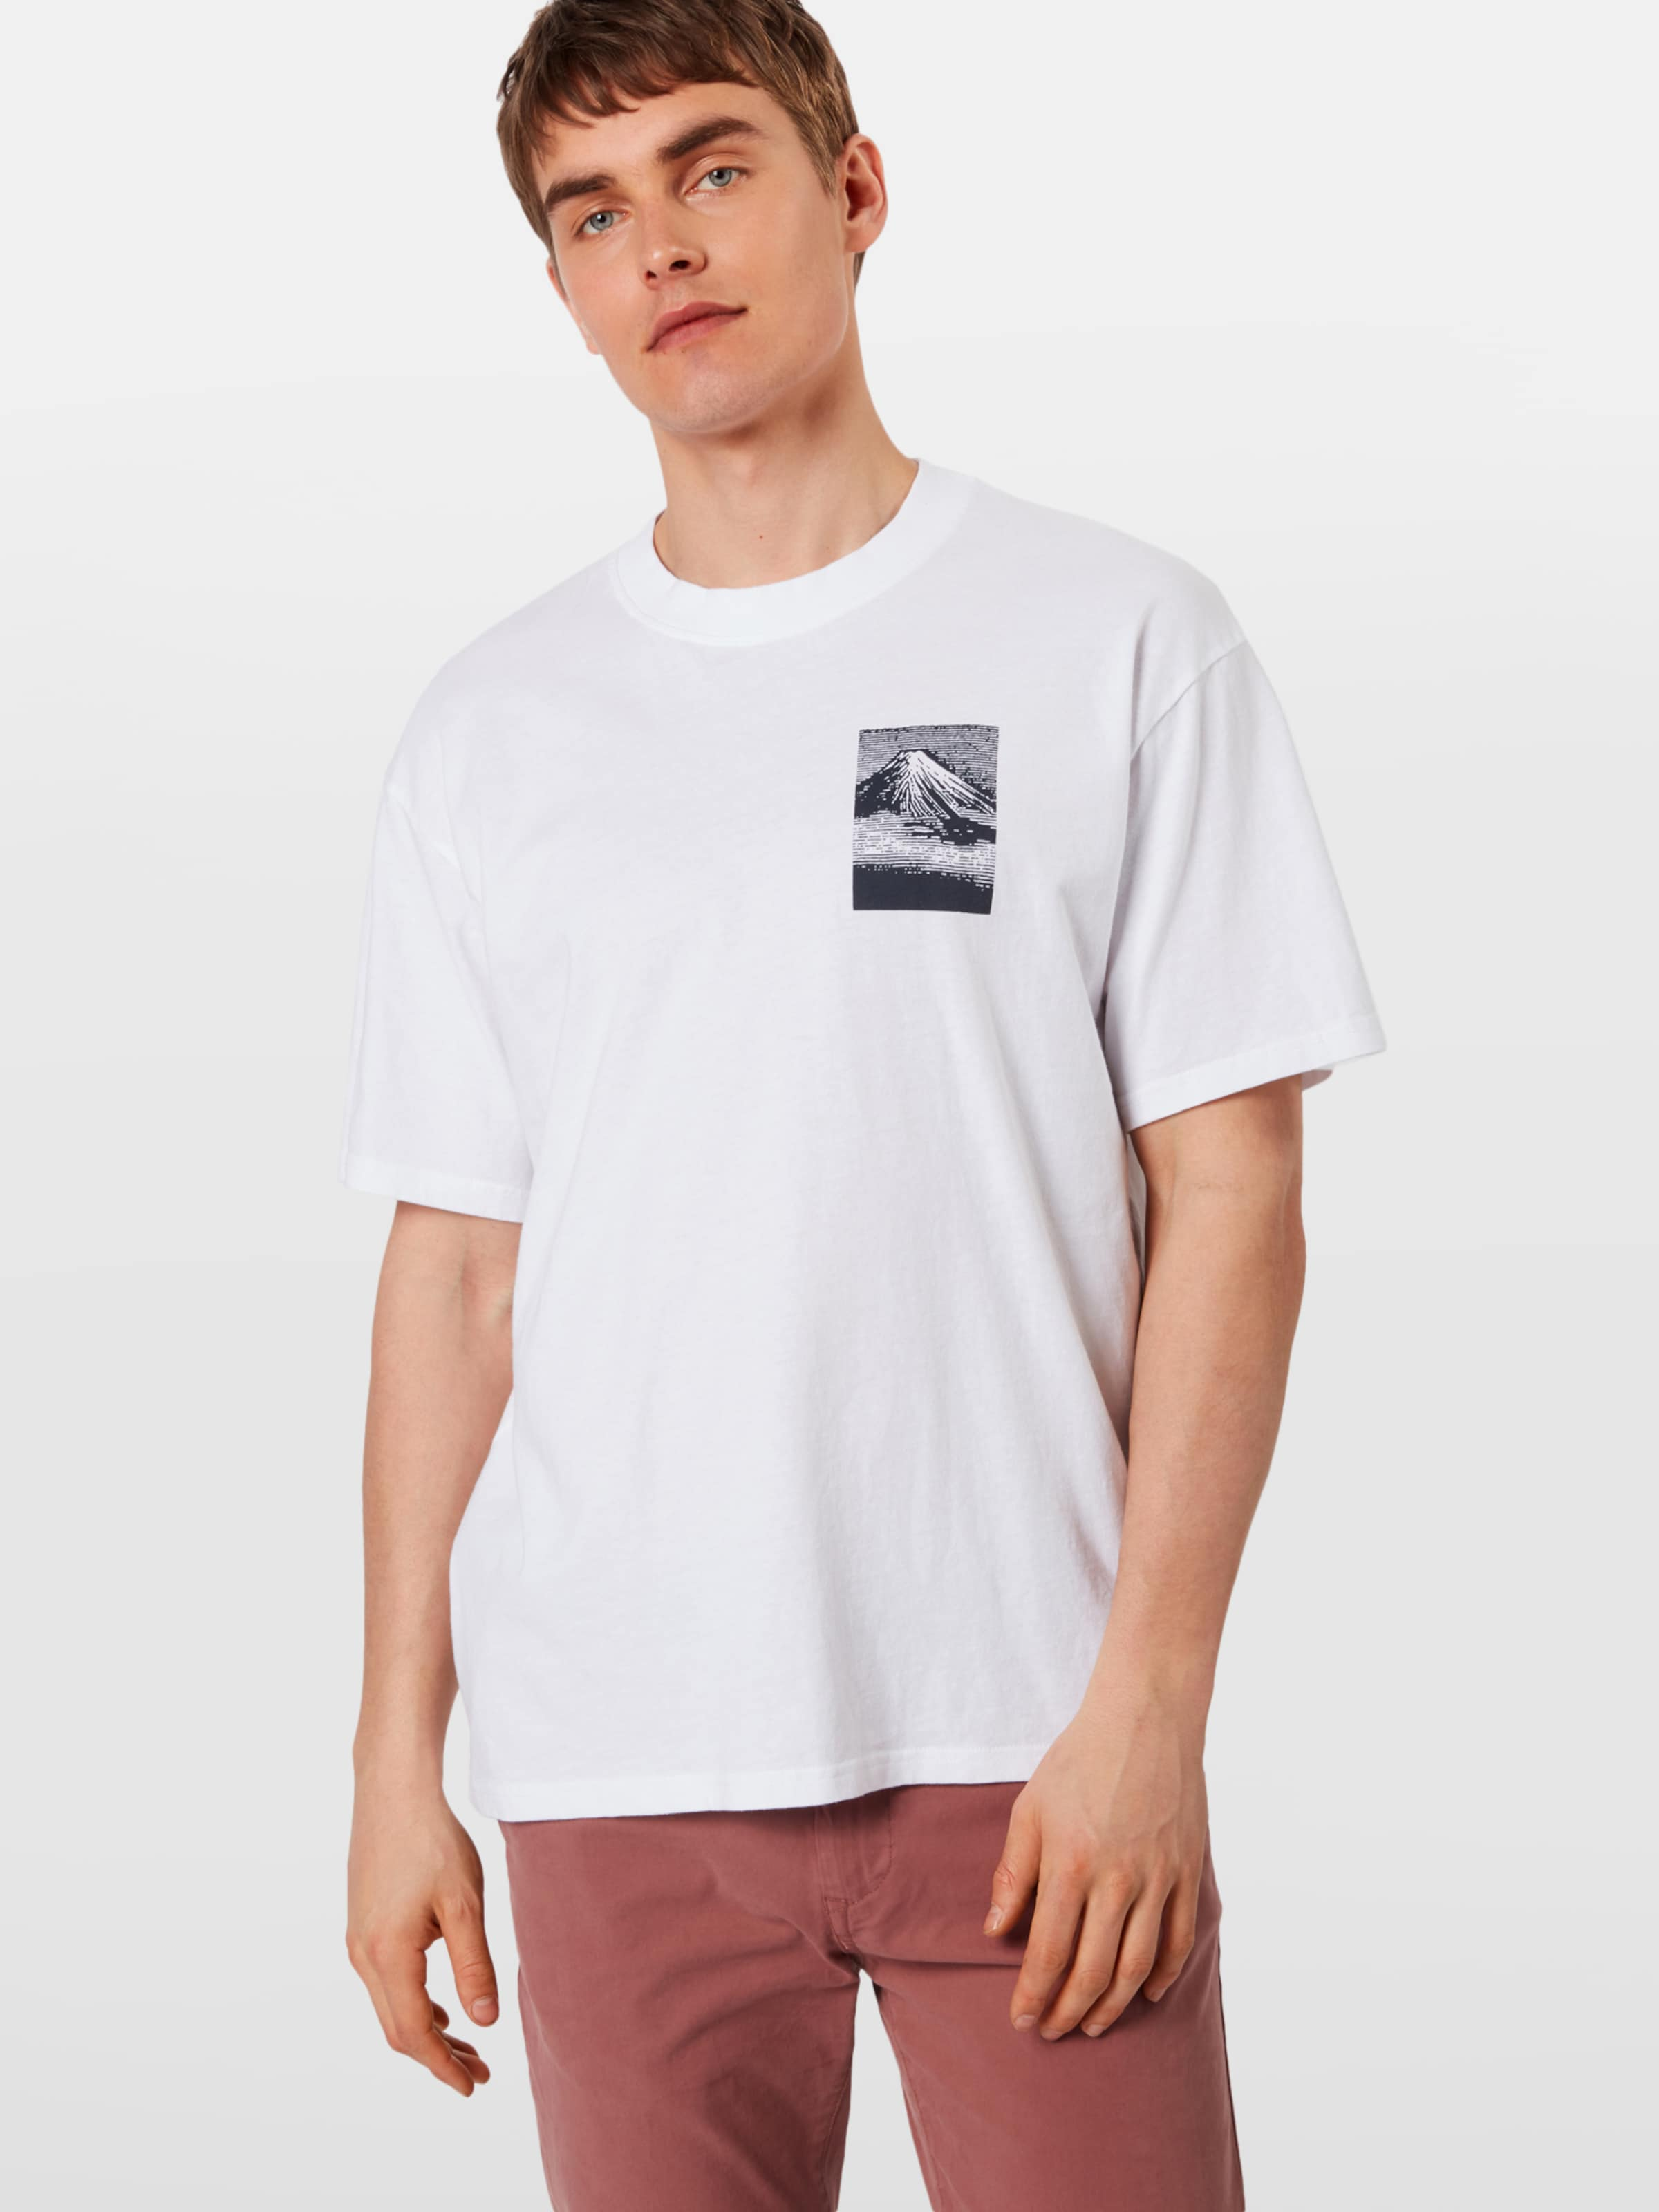 Mt En Fuji Ts' shirt Edwin T Blanc 'from QhCdBrxts